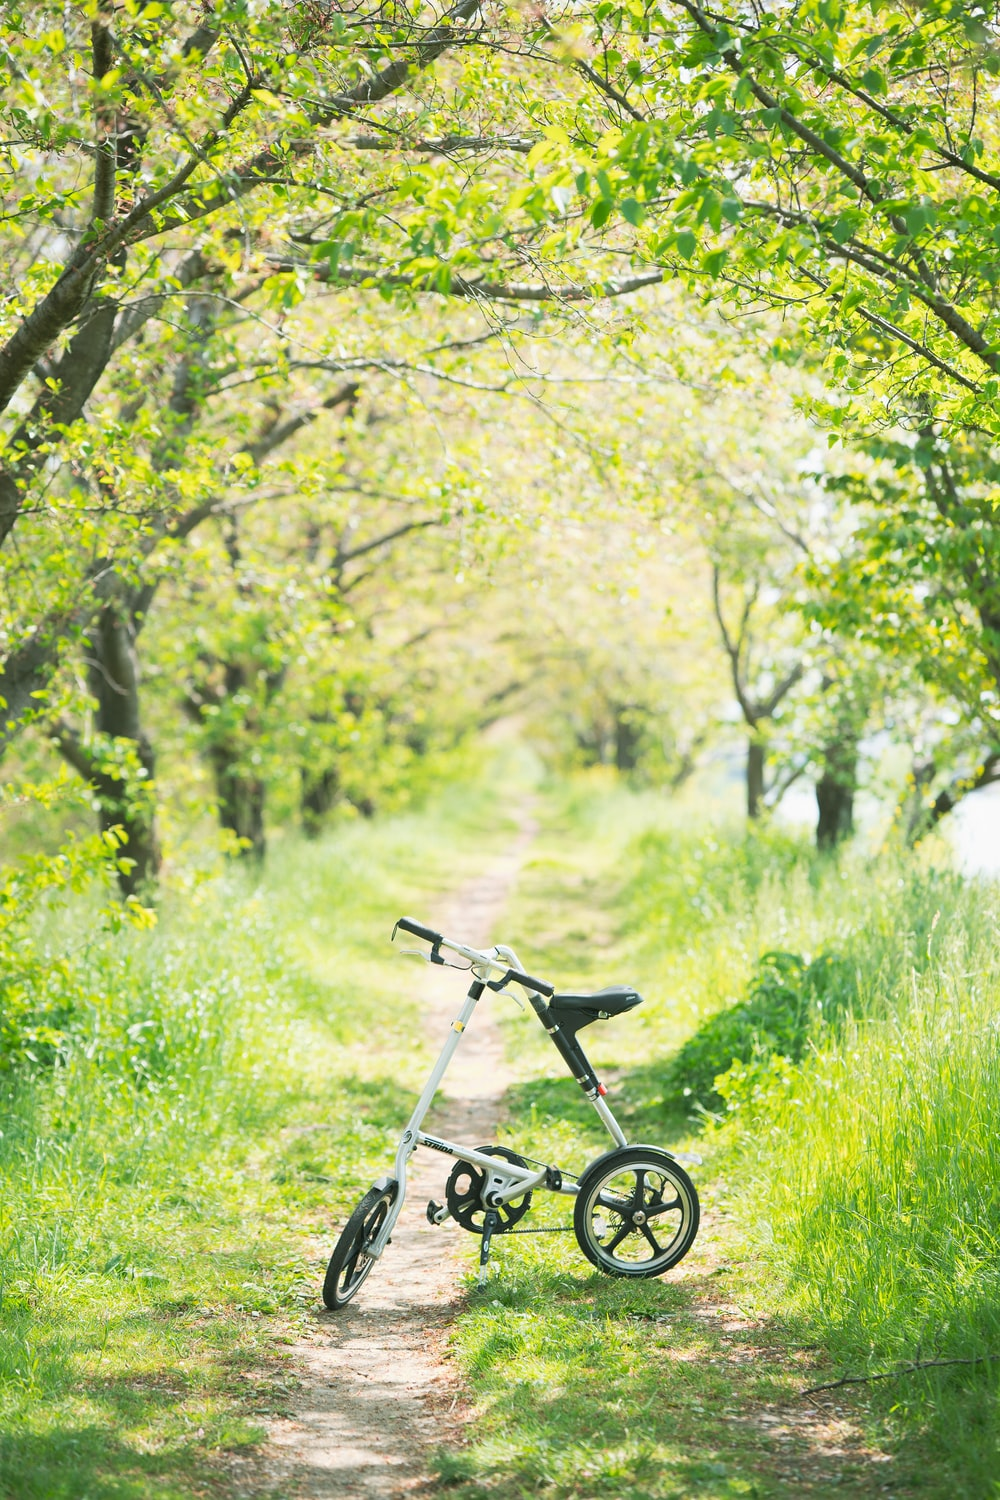 black bicycle on green grass field during daytime